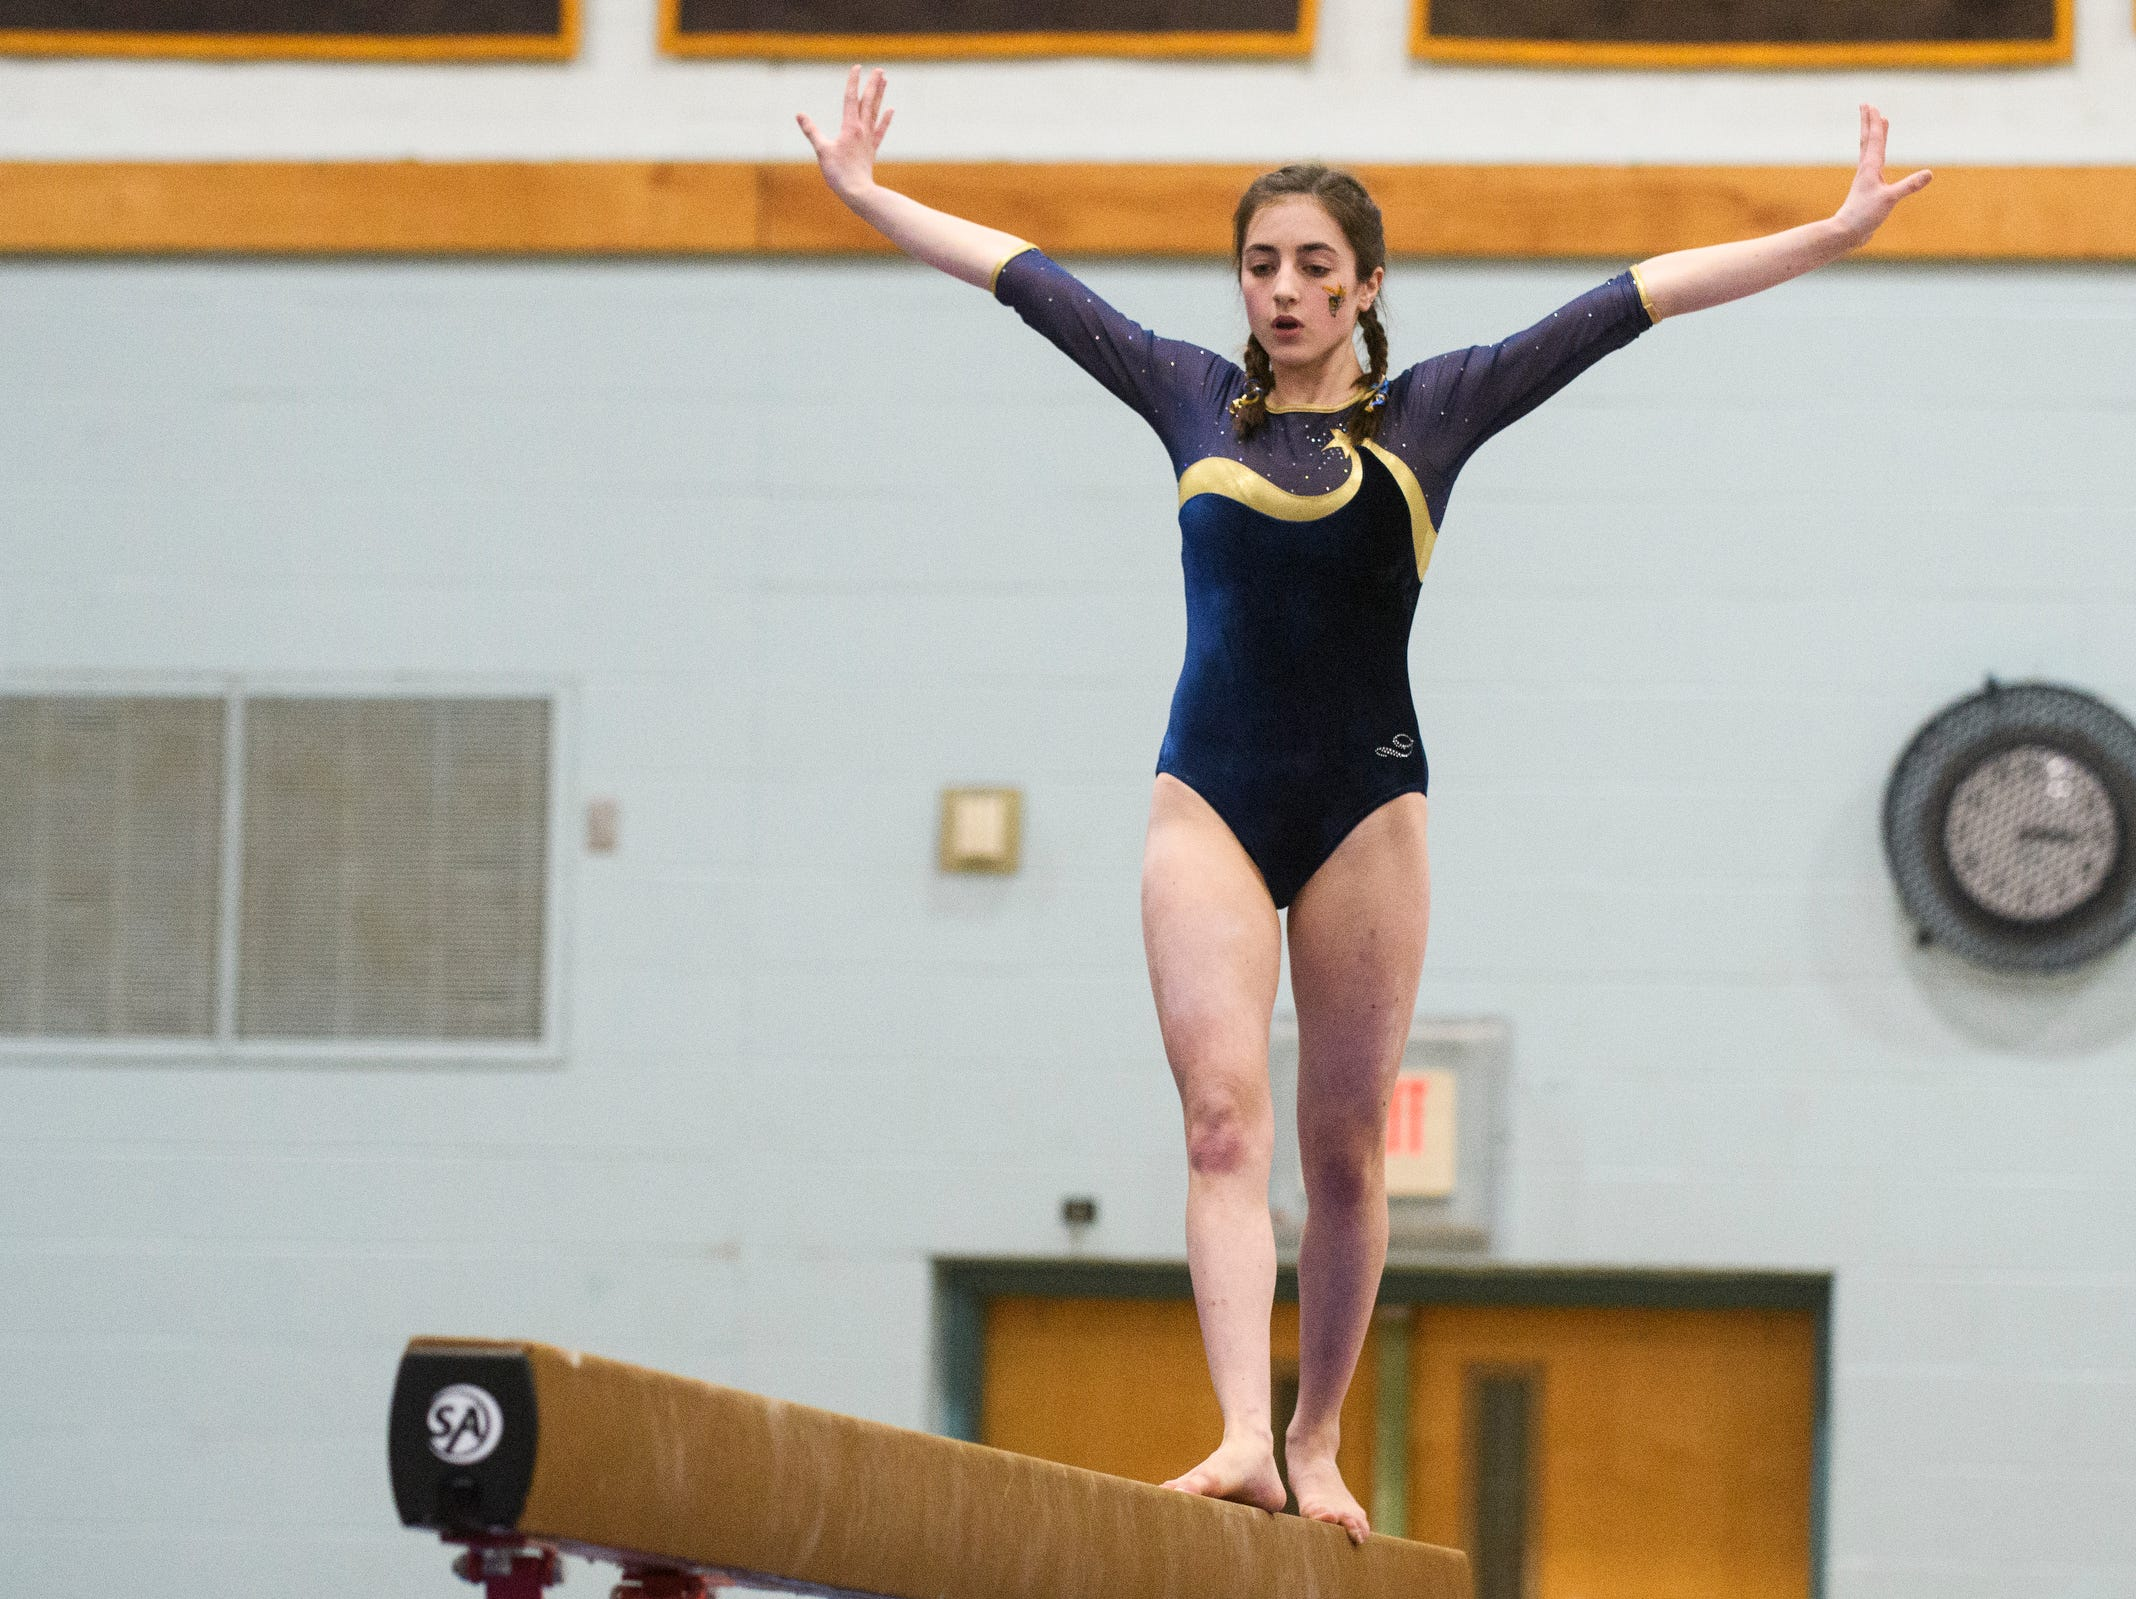 Essex's Livia Ball compete in the bar during the 2019 high school gymnastics championship at Essex High School on Saturday afternoon February 16, 2019 in Essex, Vermont. (